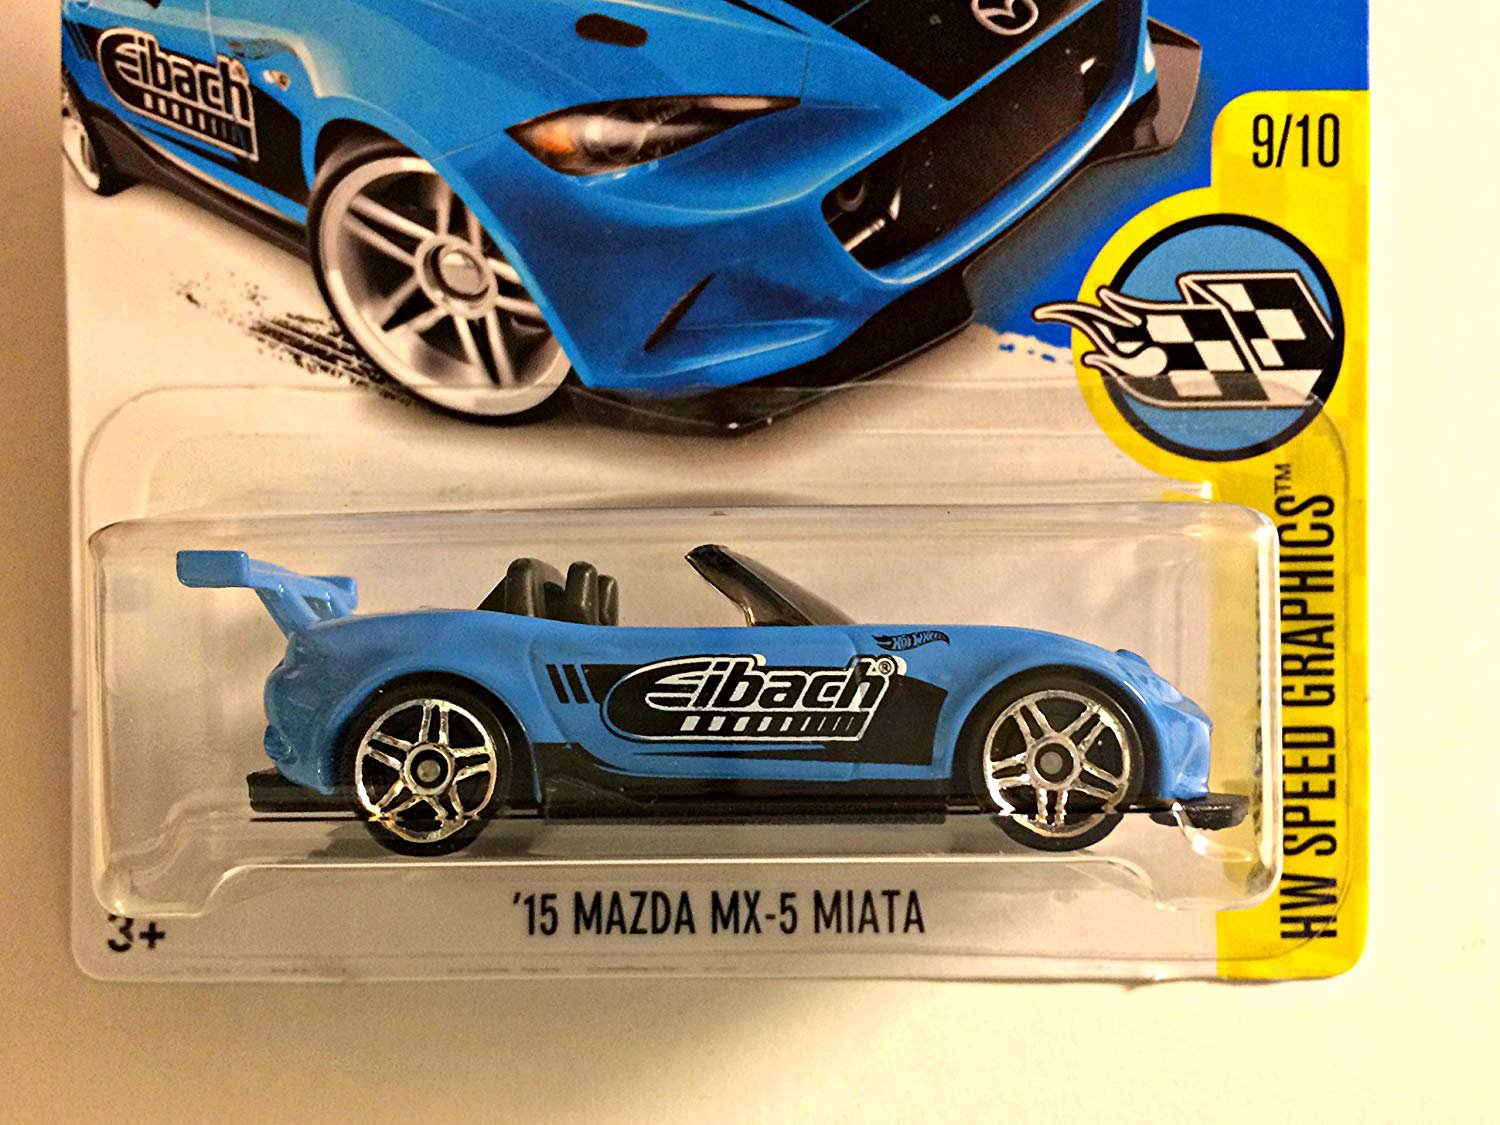 Hot Wheels 2017 HW Speed Graphics '15 Mazda MX-5 Miata 177/365, Light Blue